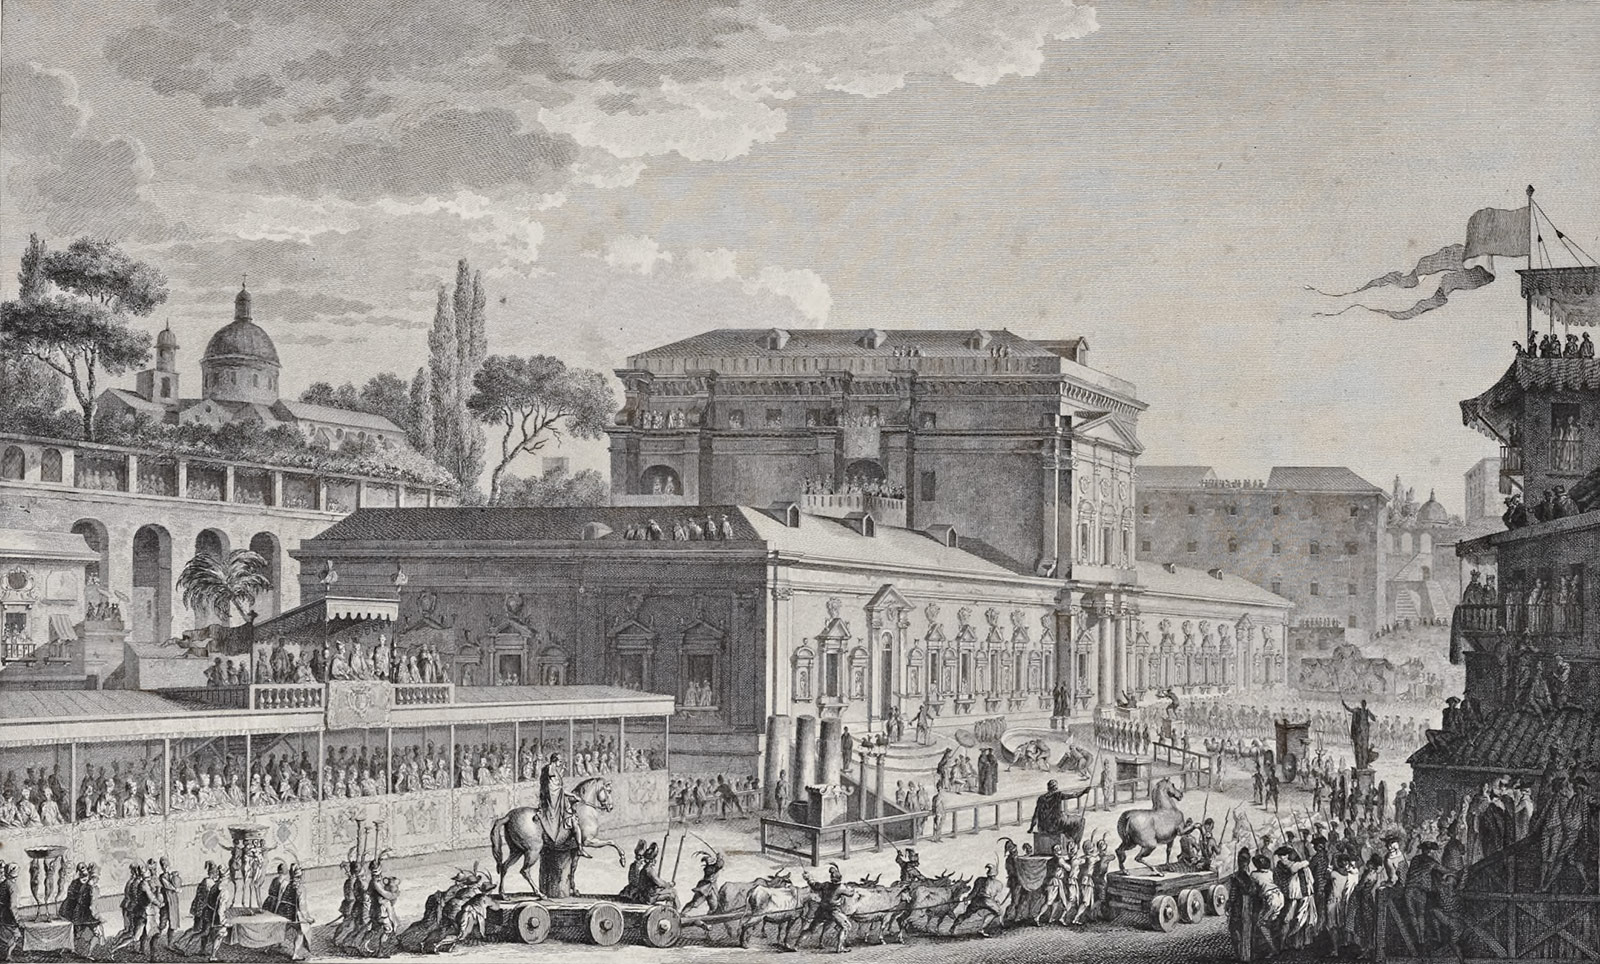 Detailed engraving of an Italian cityscape with a parade of cultural heritage treasures proceeding to the right, toward a palatial museum